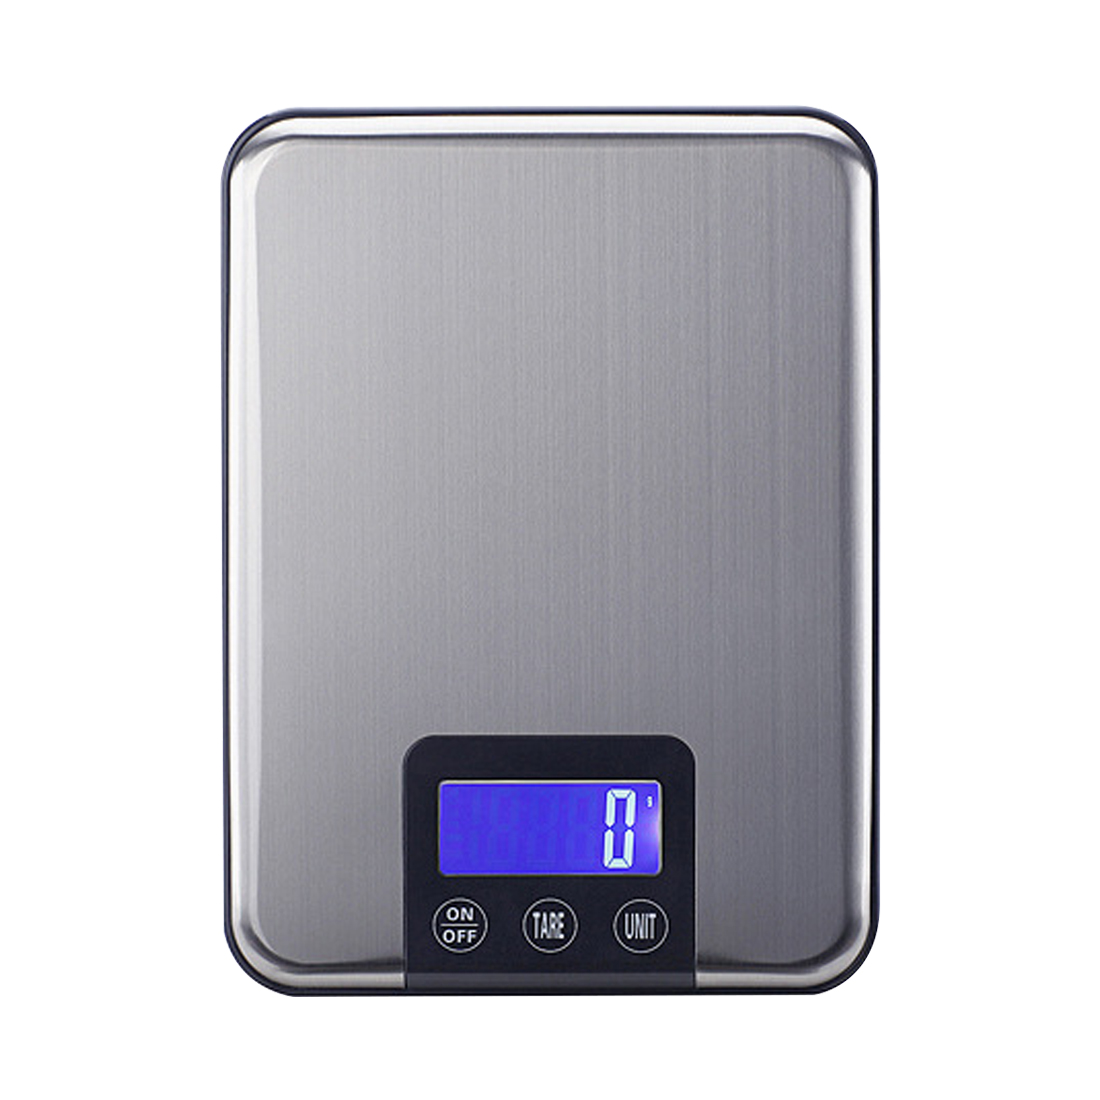 Slim Stainless Steel 33LB 15KG/1G Portable Balance Digital Kitchen Scale Electronic Postal Platform Baking Diet Food Weight LCD 1s 2s 3s 4s 5s 6s 7s 8s lipo battery balance connector for rc model battery esc